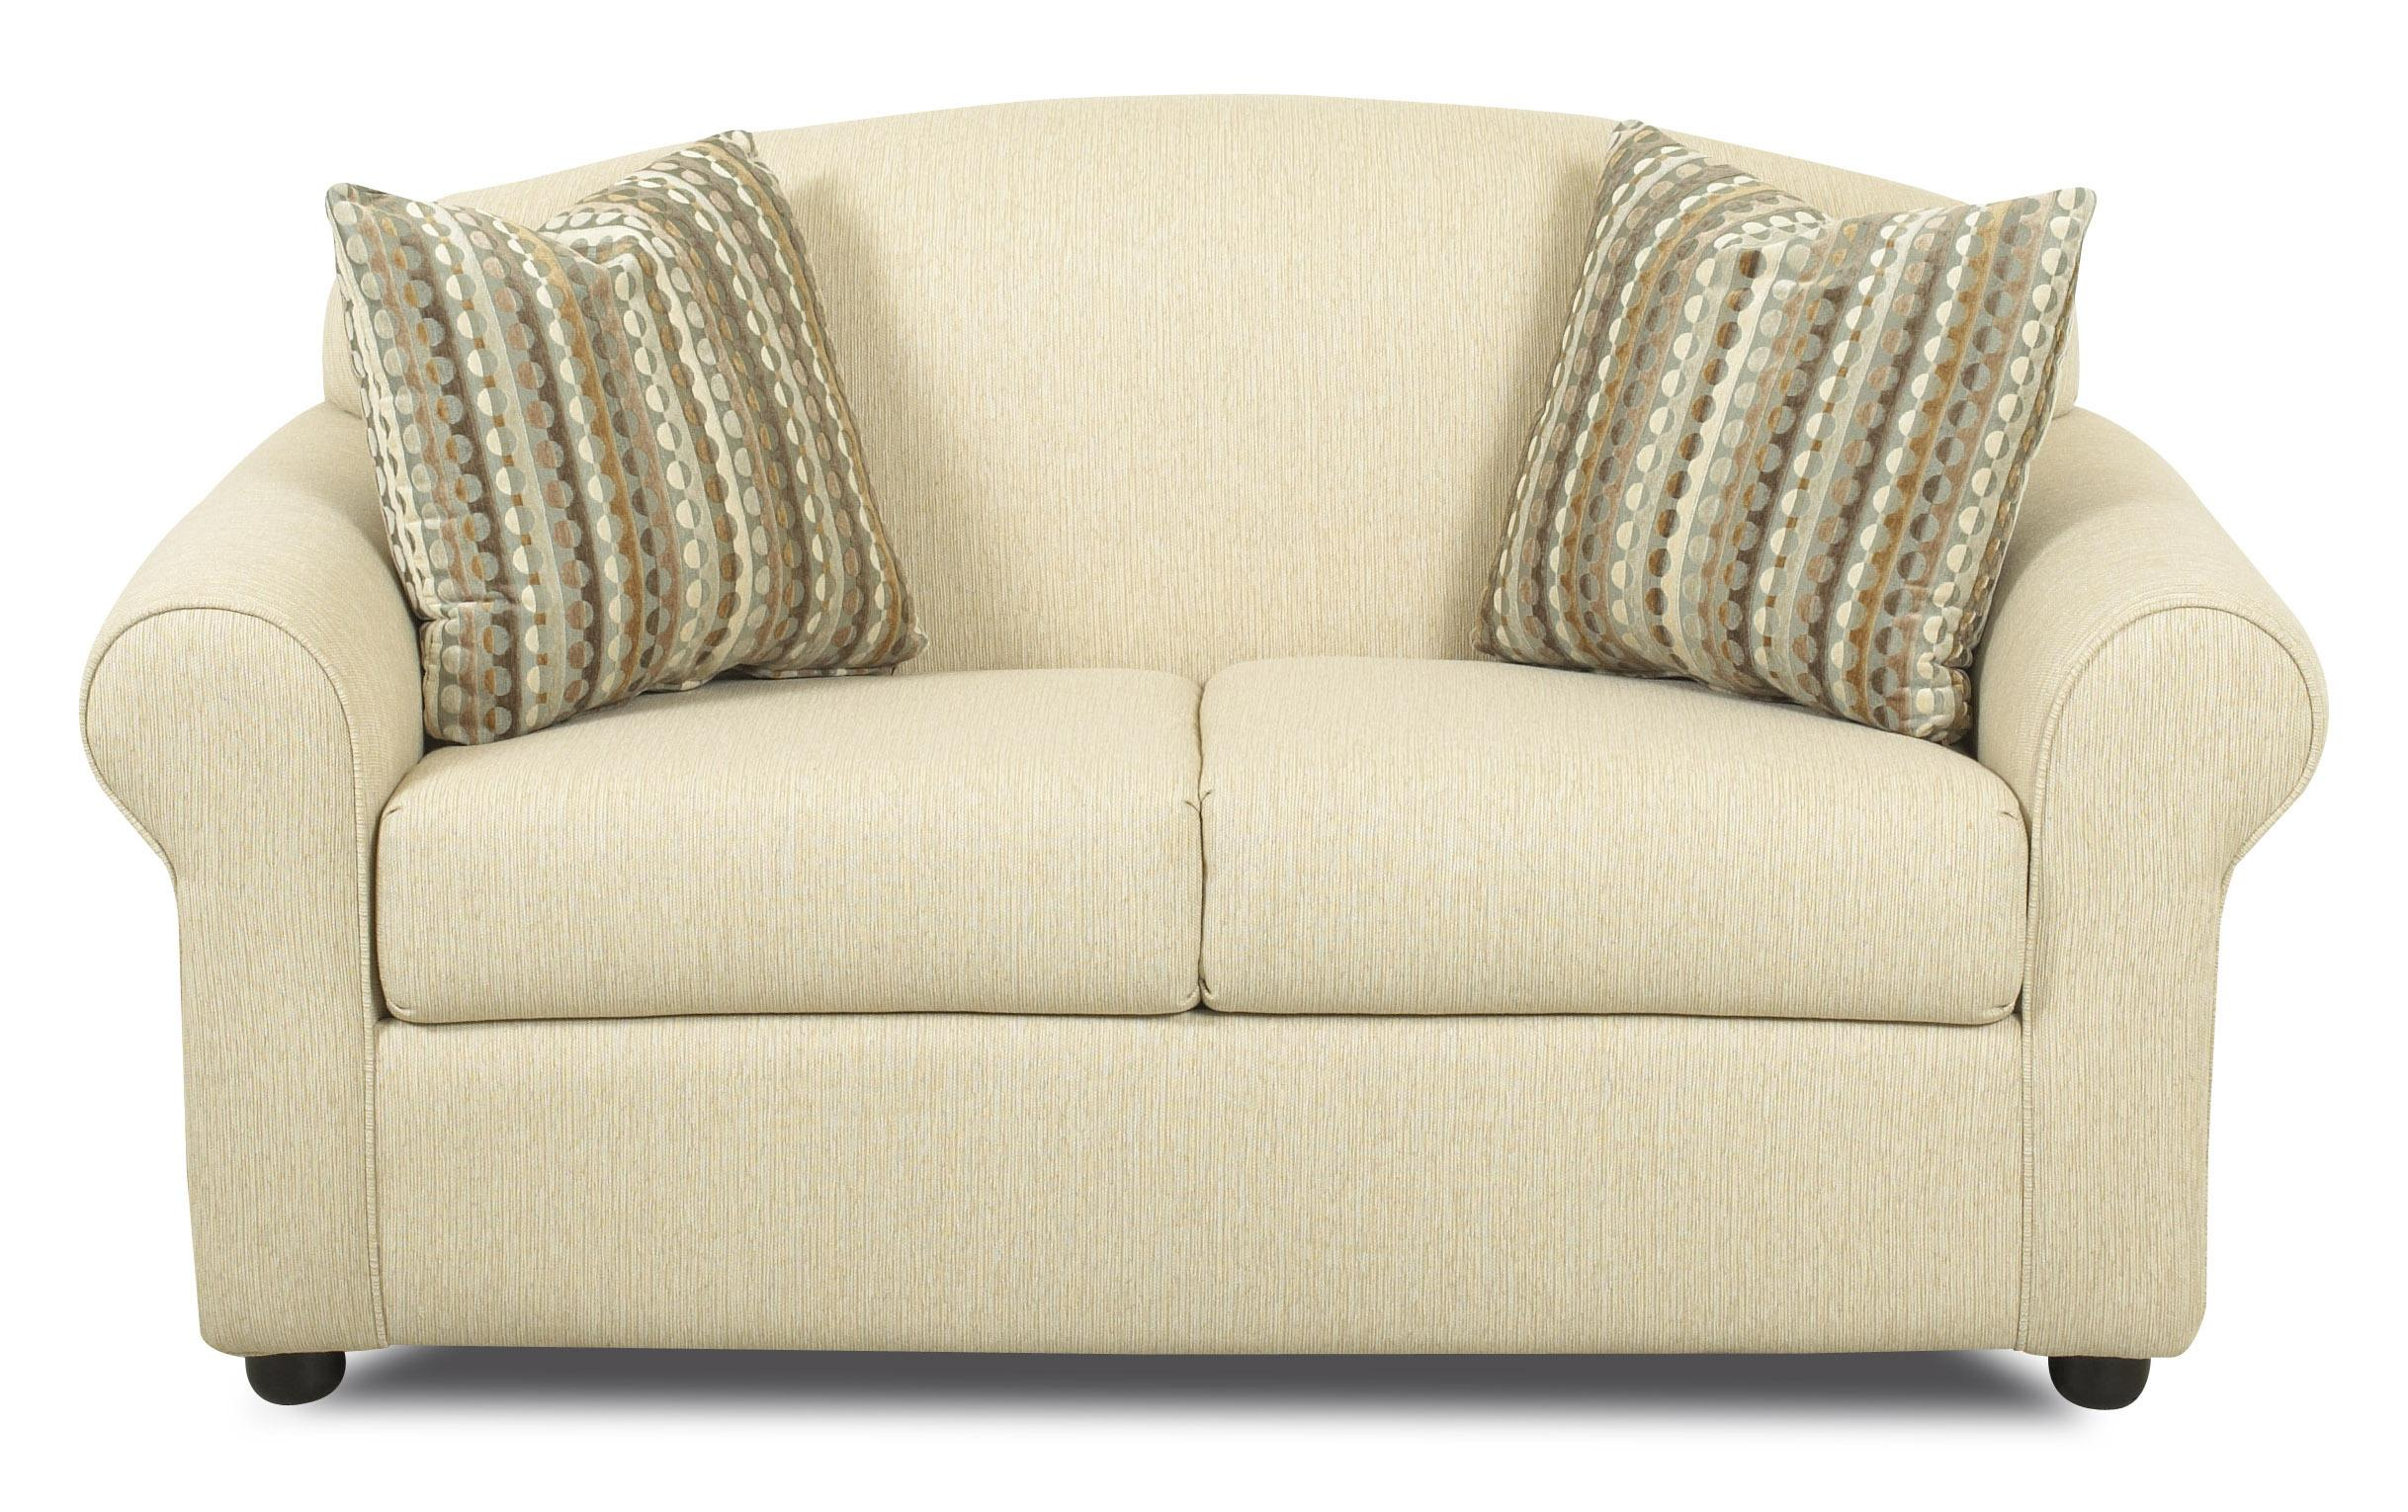 Klaussner Possibilities Innerspring Twin Sleeper Loveseat